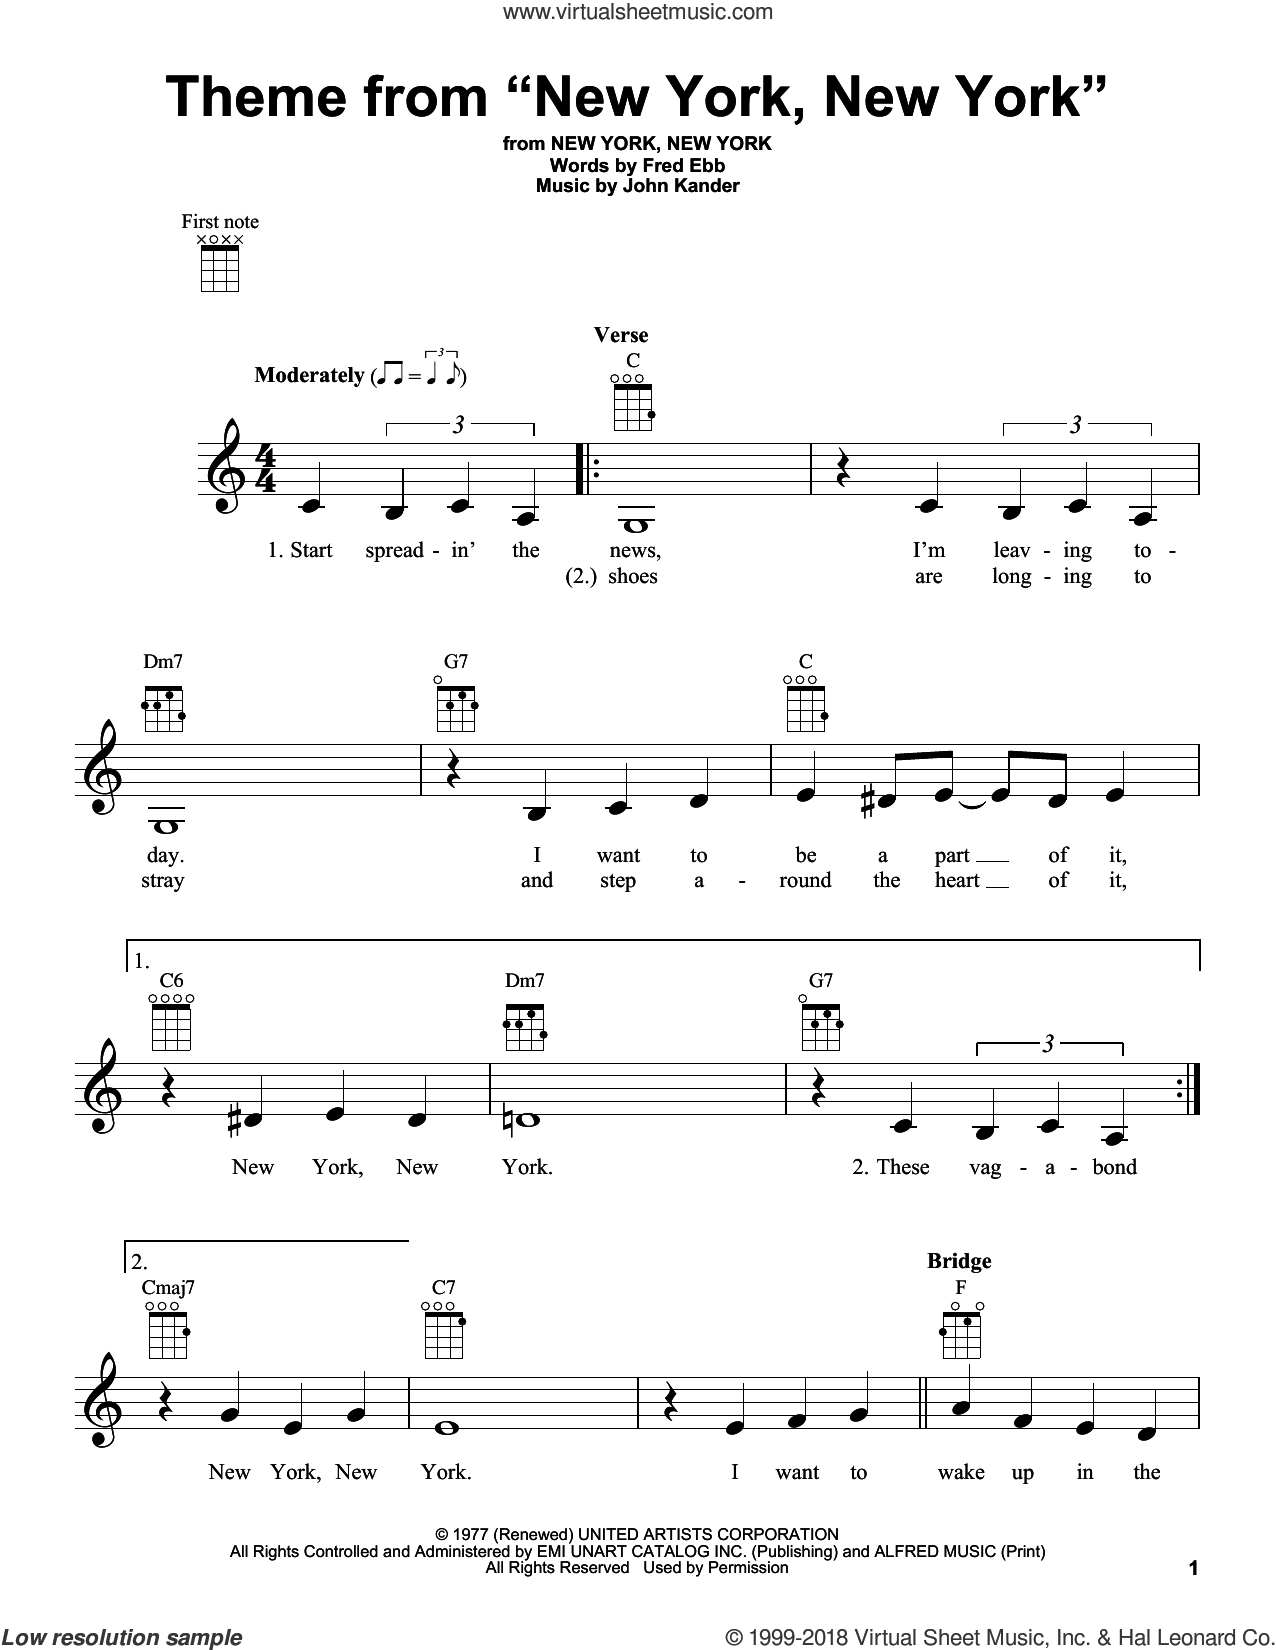 Theme From 'New York, New York' sheet music for ukulele by Frank Sinatra, Fred Ebb and John Kander, intermediate skill level